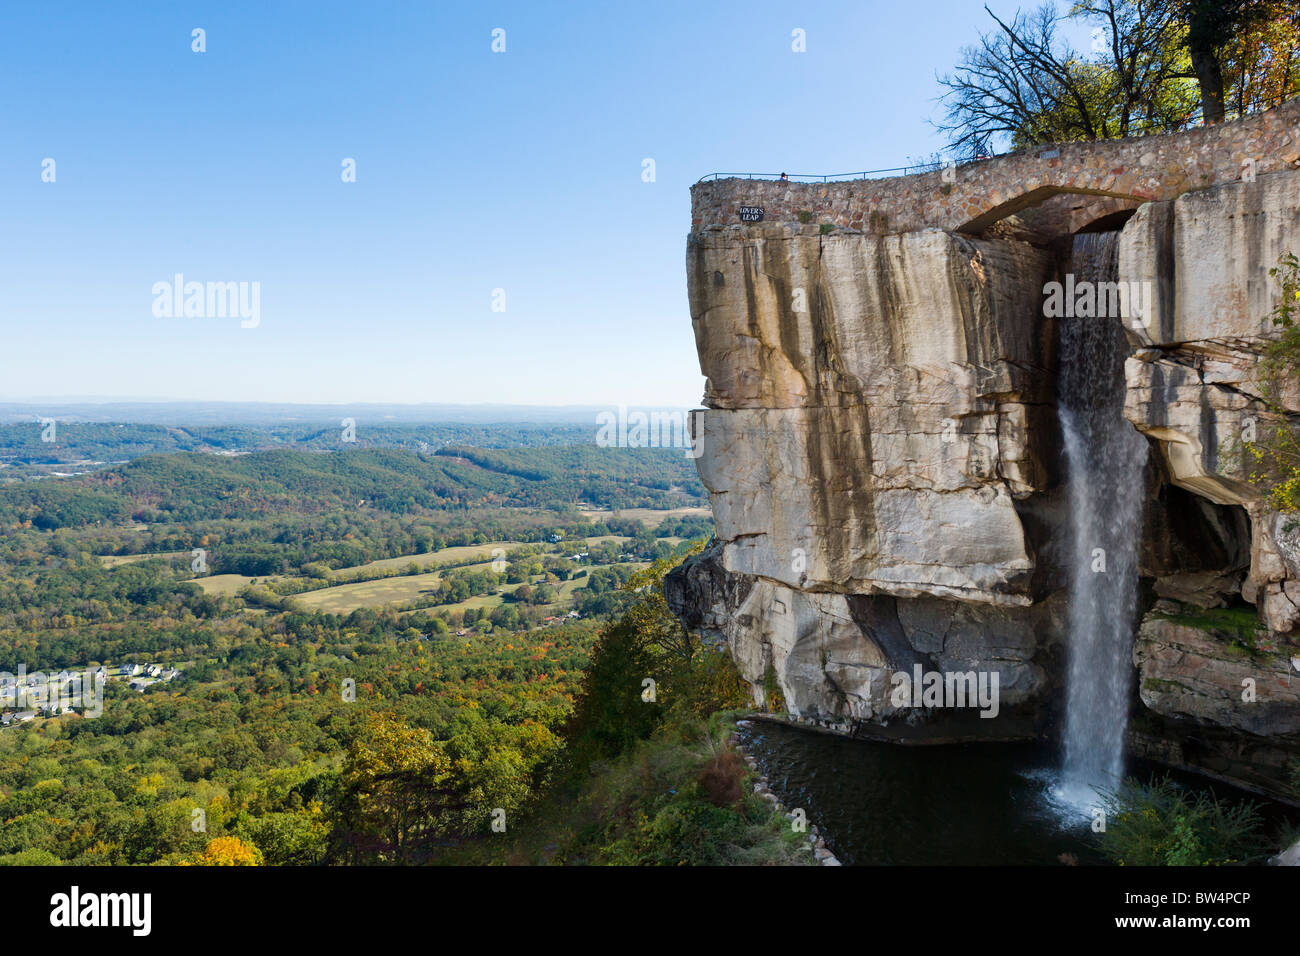 Fall Mountains In The Sun Wallpaper Lover S Leap In Rock City Gardens On Lookout Mountain